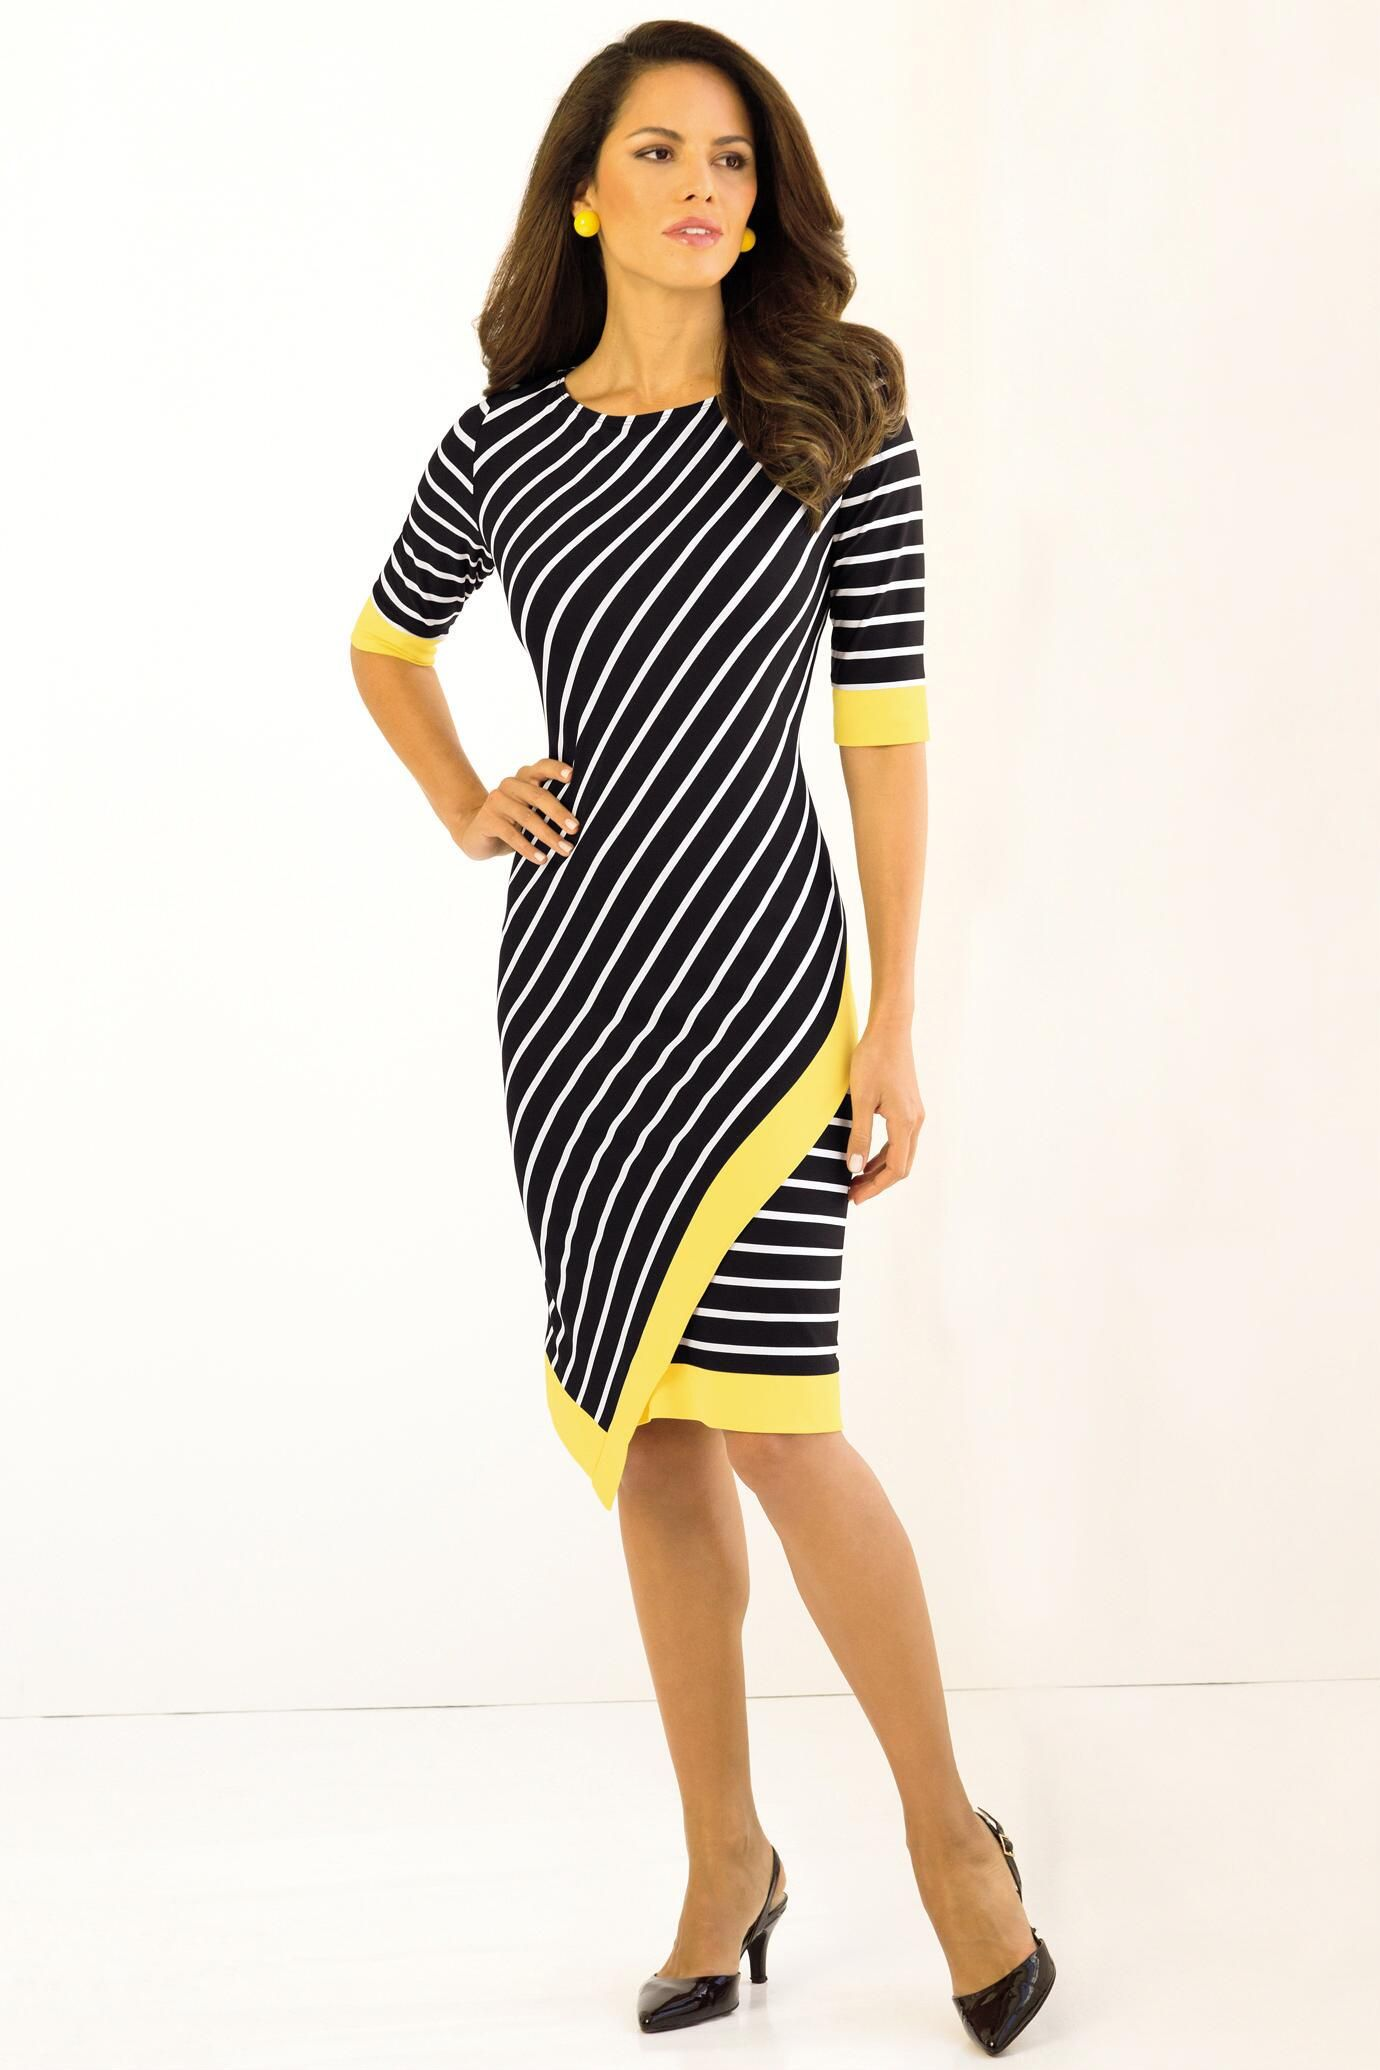 d168ac2ab771ea Tipped Striped Dress: Dress features slimming diagonal stripes on the front  and horizontal stripes on the back; the contrast tipping adds a bold swipe  of ...